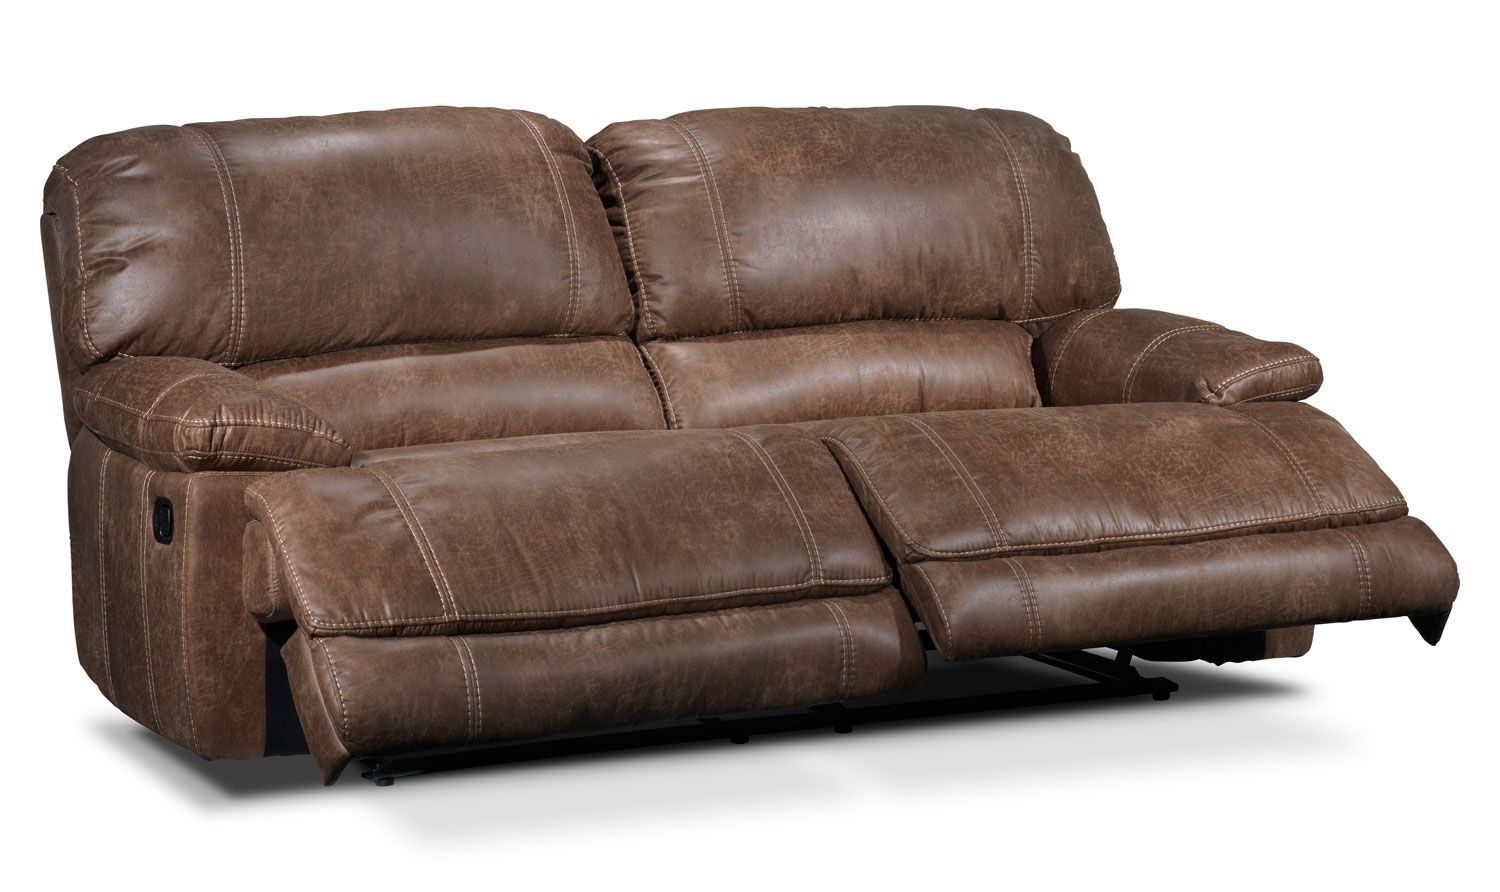 Slipcovers For Sofas Saddle Up The rugged look of the Durango reclining sofa makes it just the place